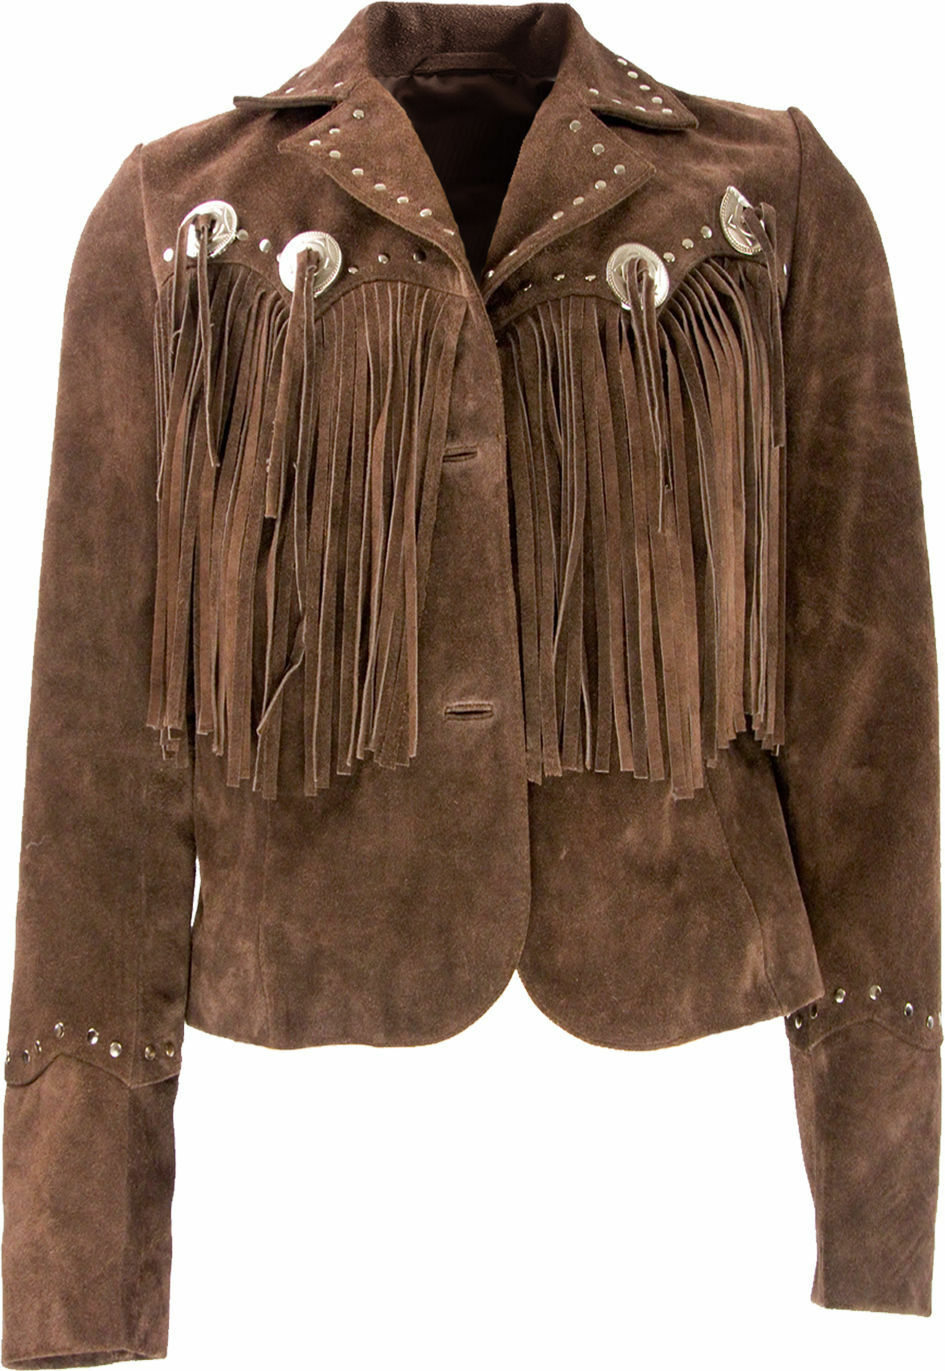 Fransen Giacca, Indiana stile, Country Western Giacca per Signore Pelle